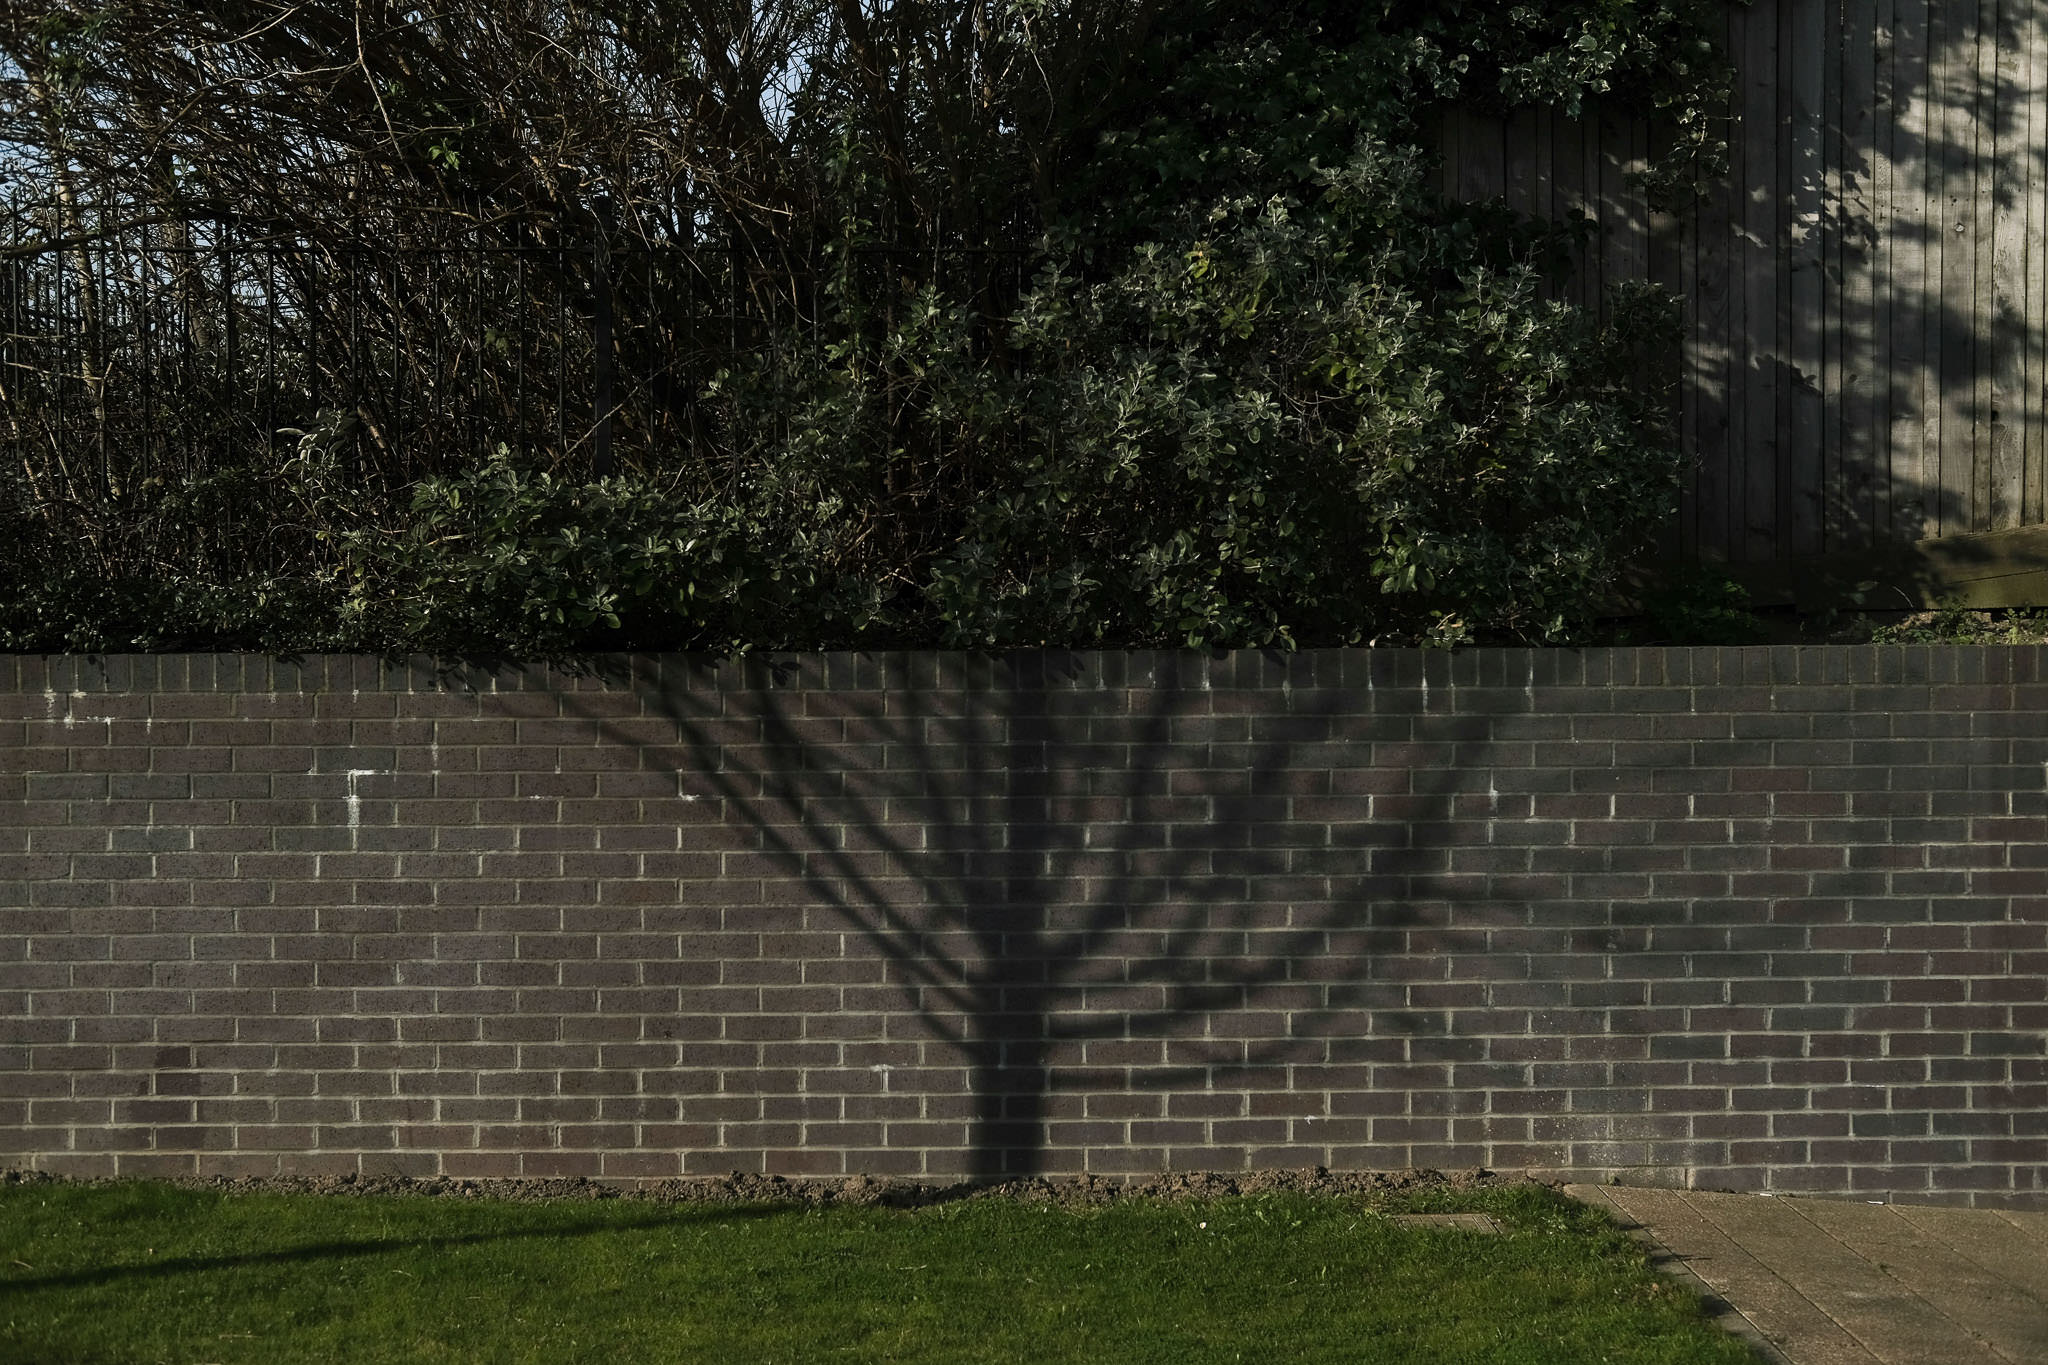 Funny photo of a tree growing above a wall while a shadow from a different tree looks like the trunk